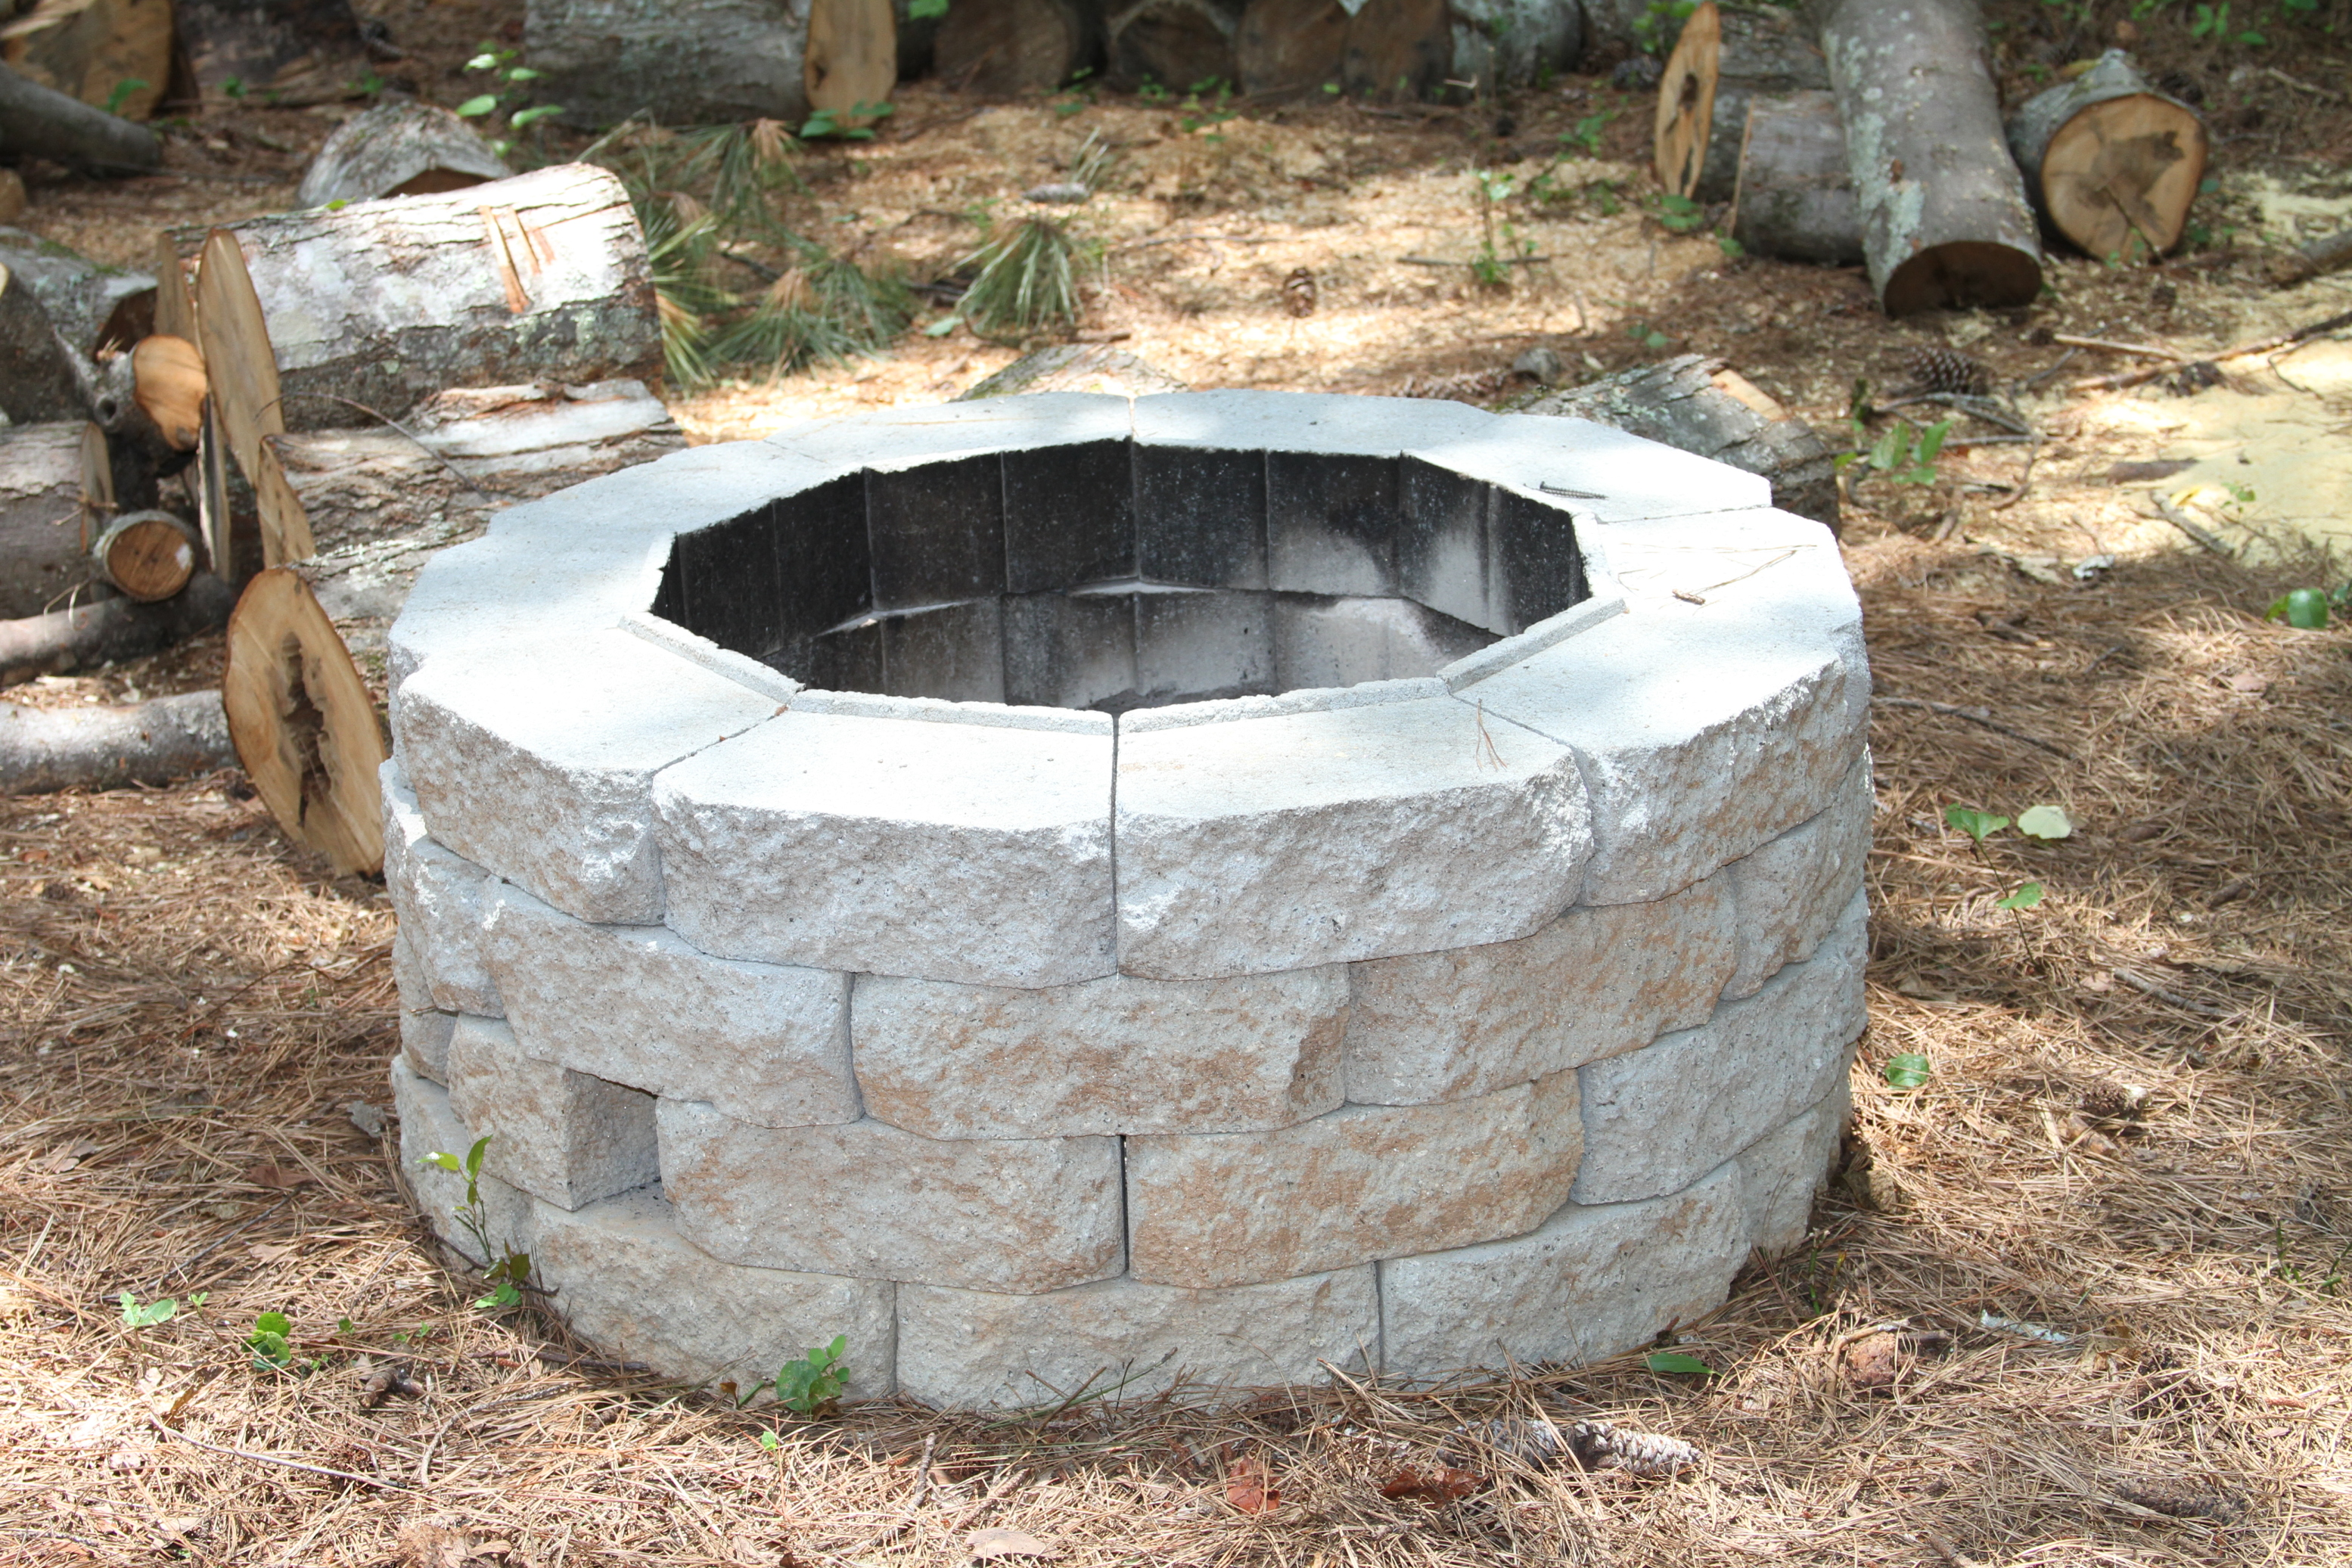 Easy DIY Inexpensive Firepit for Backyard Fun » Thrifty ... on Backyard Fire Pit Ideas Diy id=68408